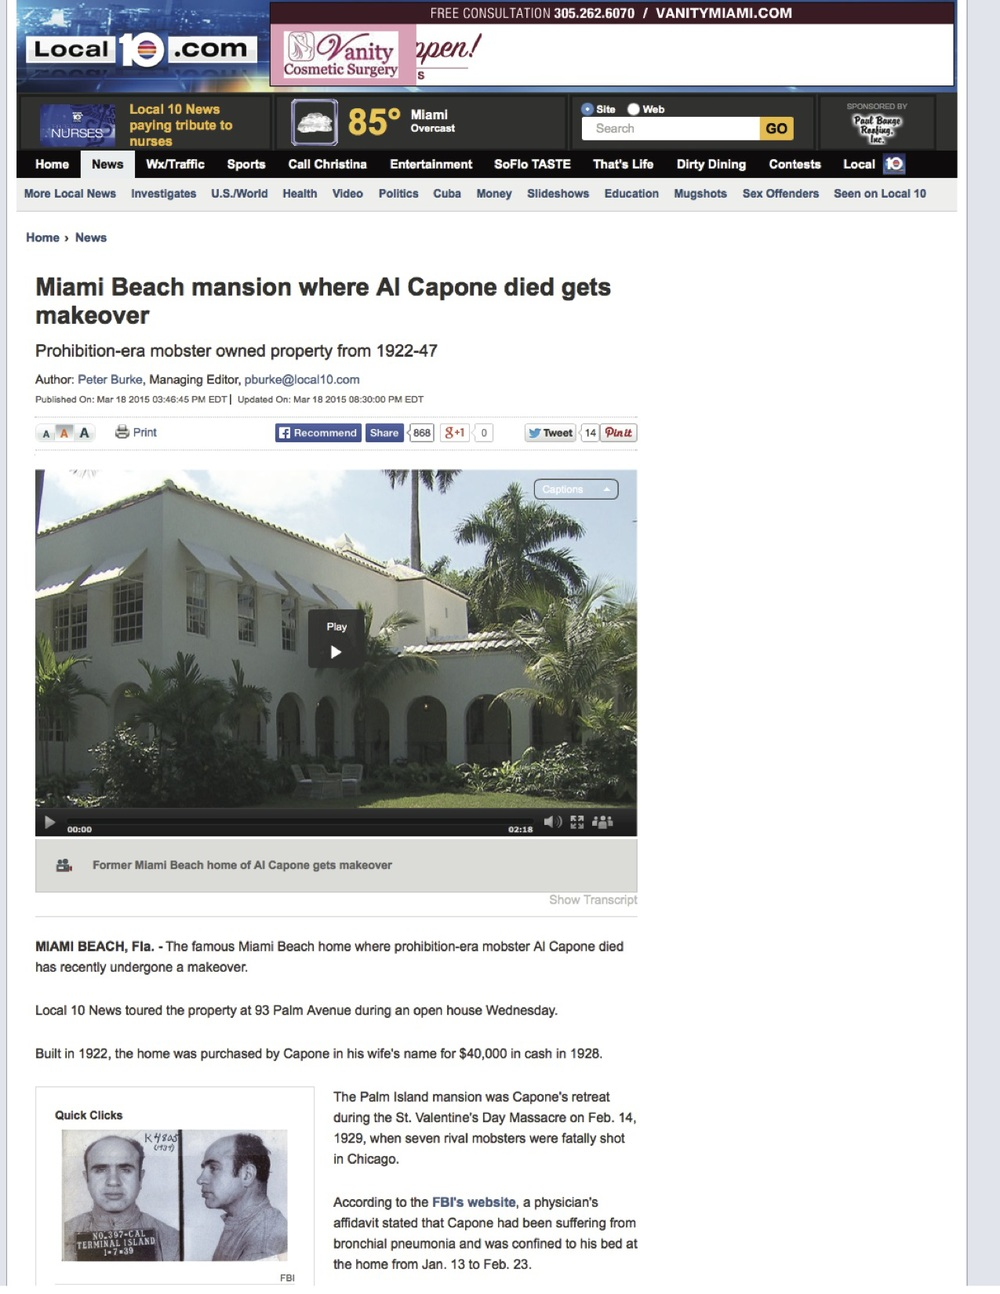 "<p><strong>Local 10 News</strong><a href=""http://www.local10.com/news/miami-beach-mansion-where-al-capone-died-gets-makeover/31869208"" target=""_blank"">Watch Video →</a></p>"